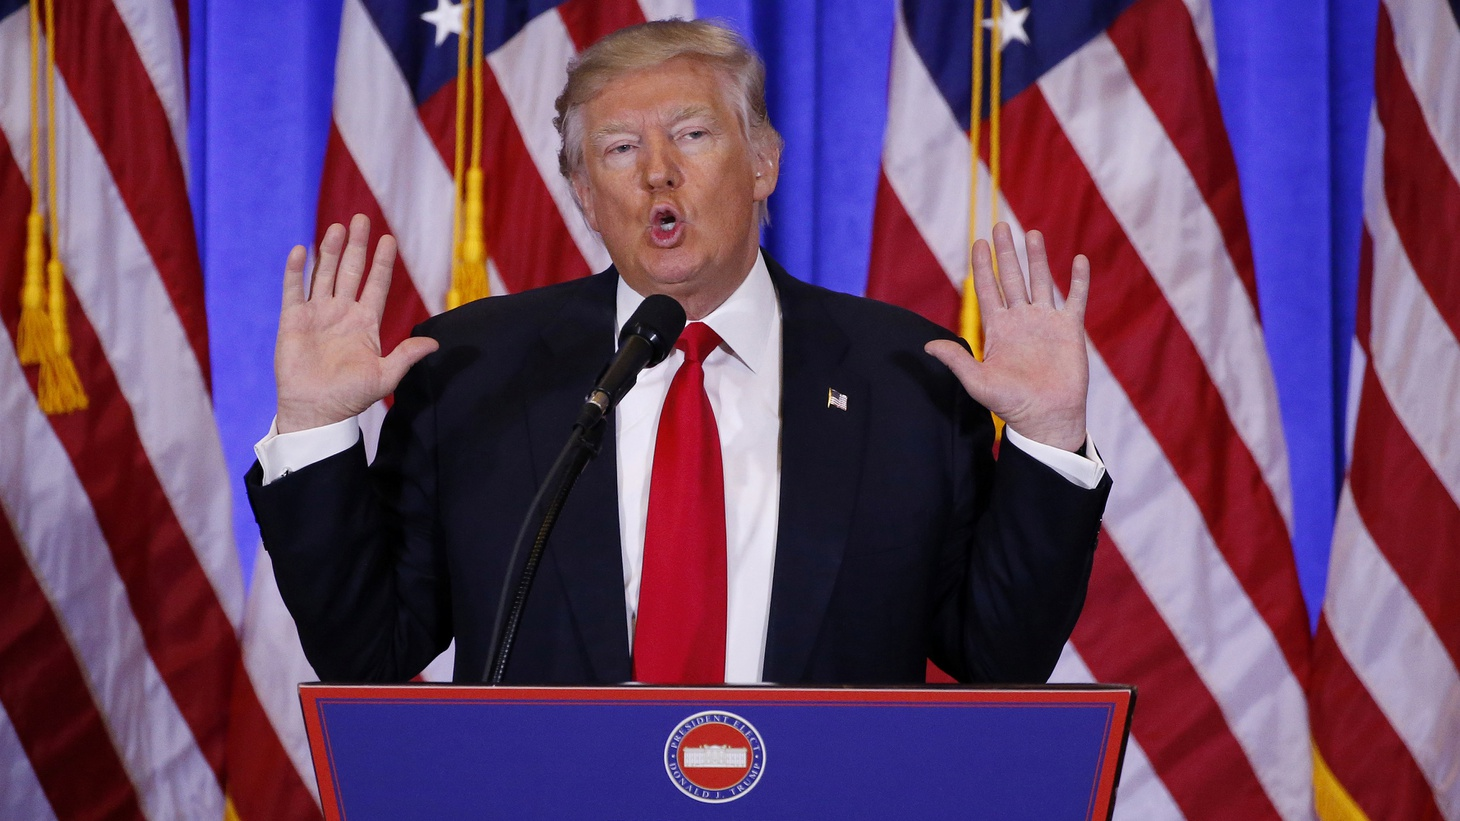 During Donald Trump's first press conference as president-elect, he answered questions about Russia, his business interests, and Obamacare. But the story grabbing all the headlines right now is about a dossier alleging the Russians have dirt on Trump and are blackmailing him with it.